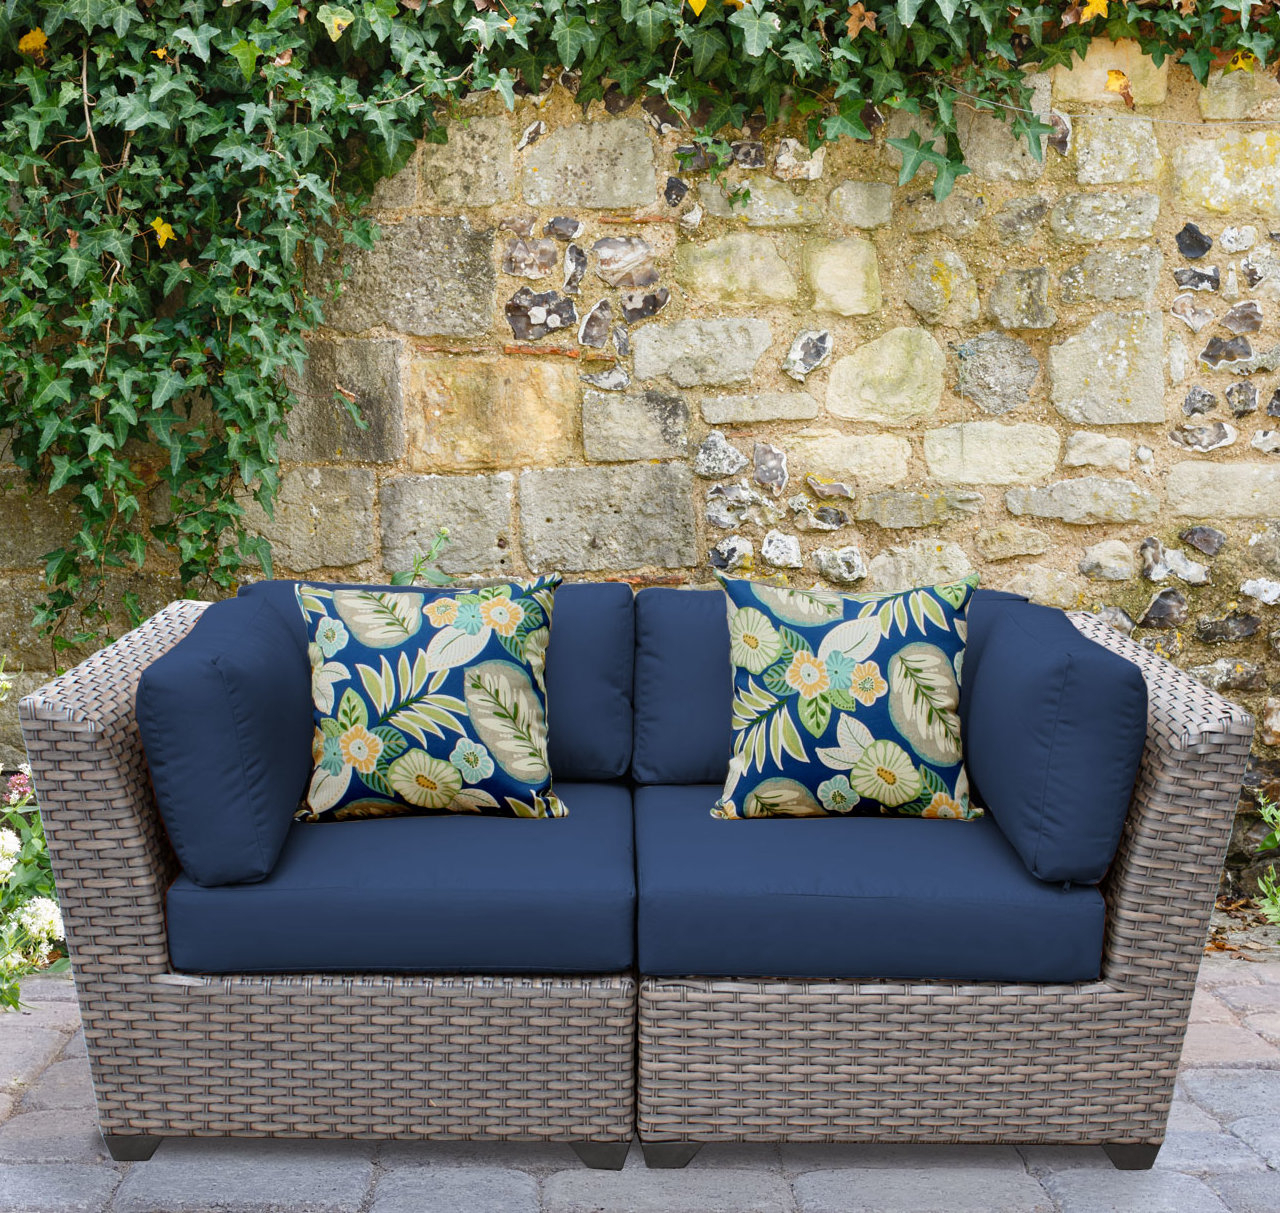 Meeks Patio Sofas With Cushions Intended For Most Up To Date Rosecliff Heights Meeks Patio Sofa With Cushions & Reviews (View 3 of 20)